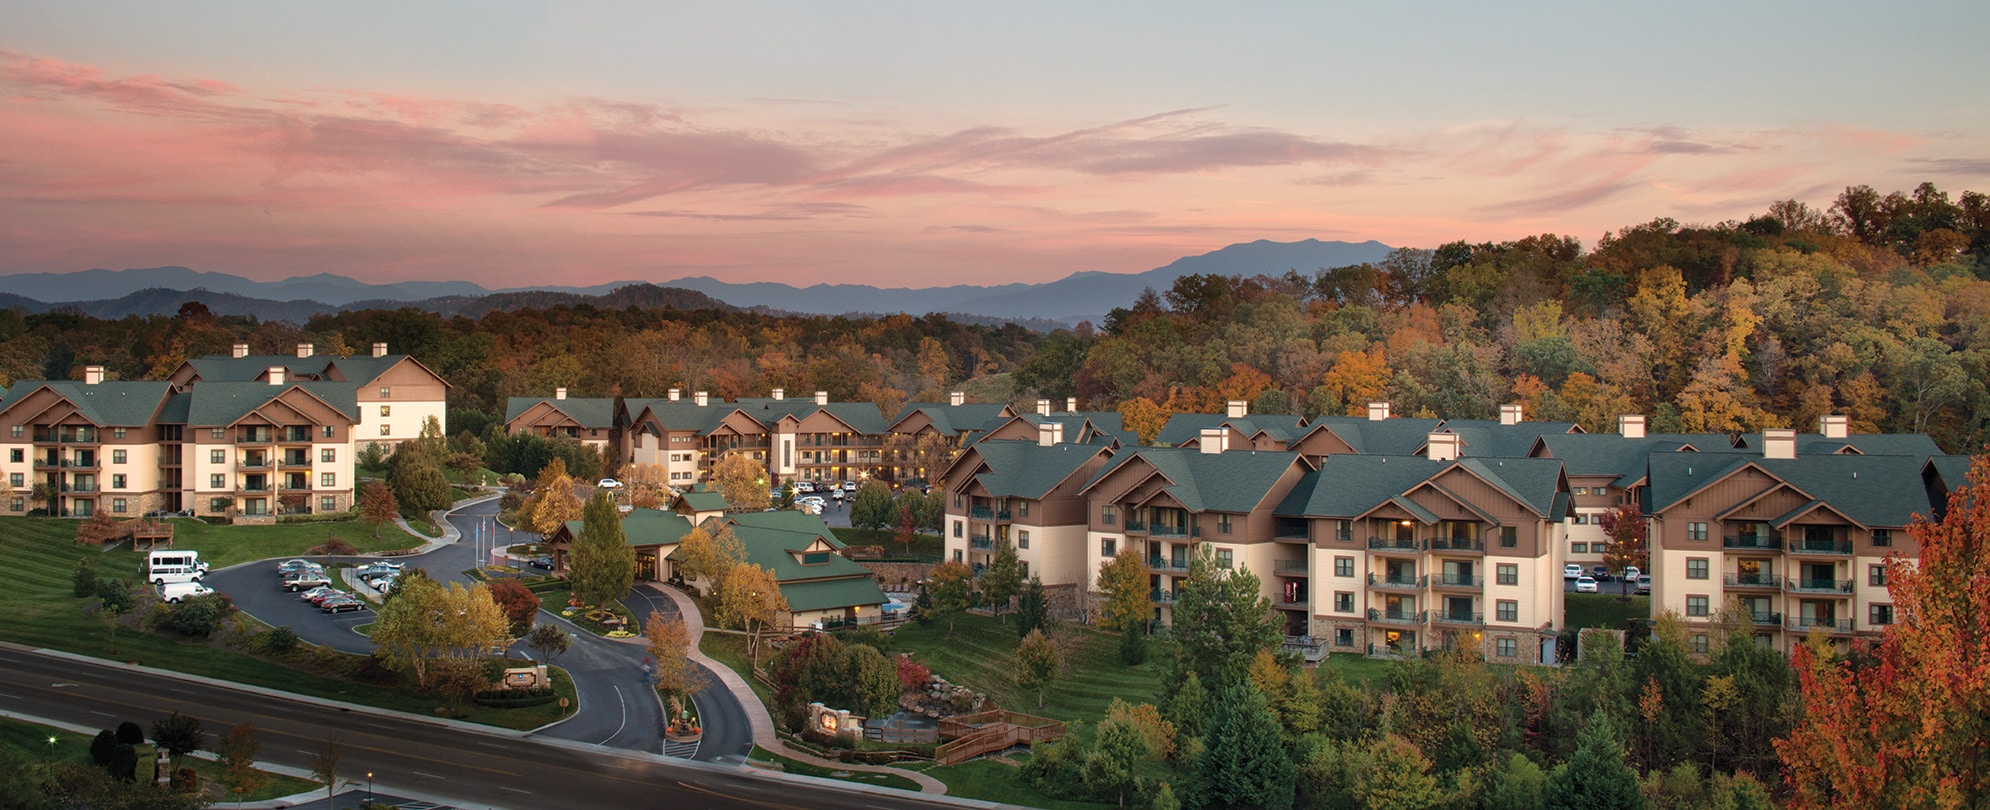 Timeshares in Sevierville Tennessee  Smoky Mountains